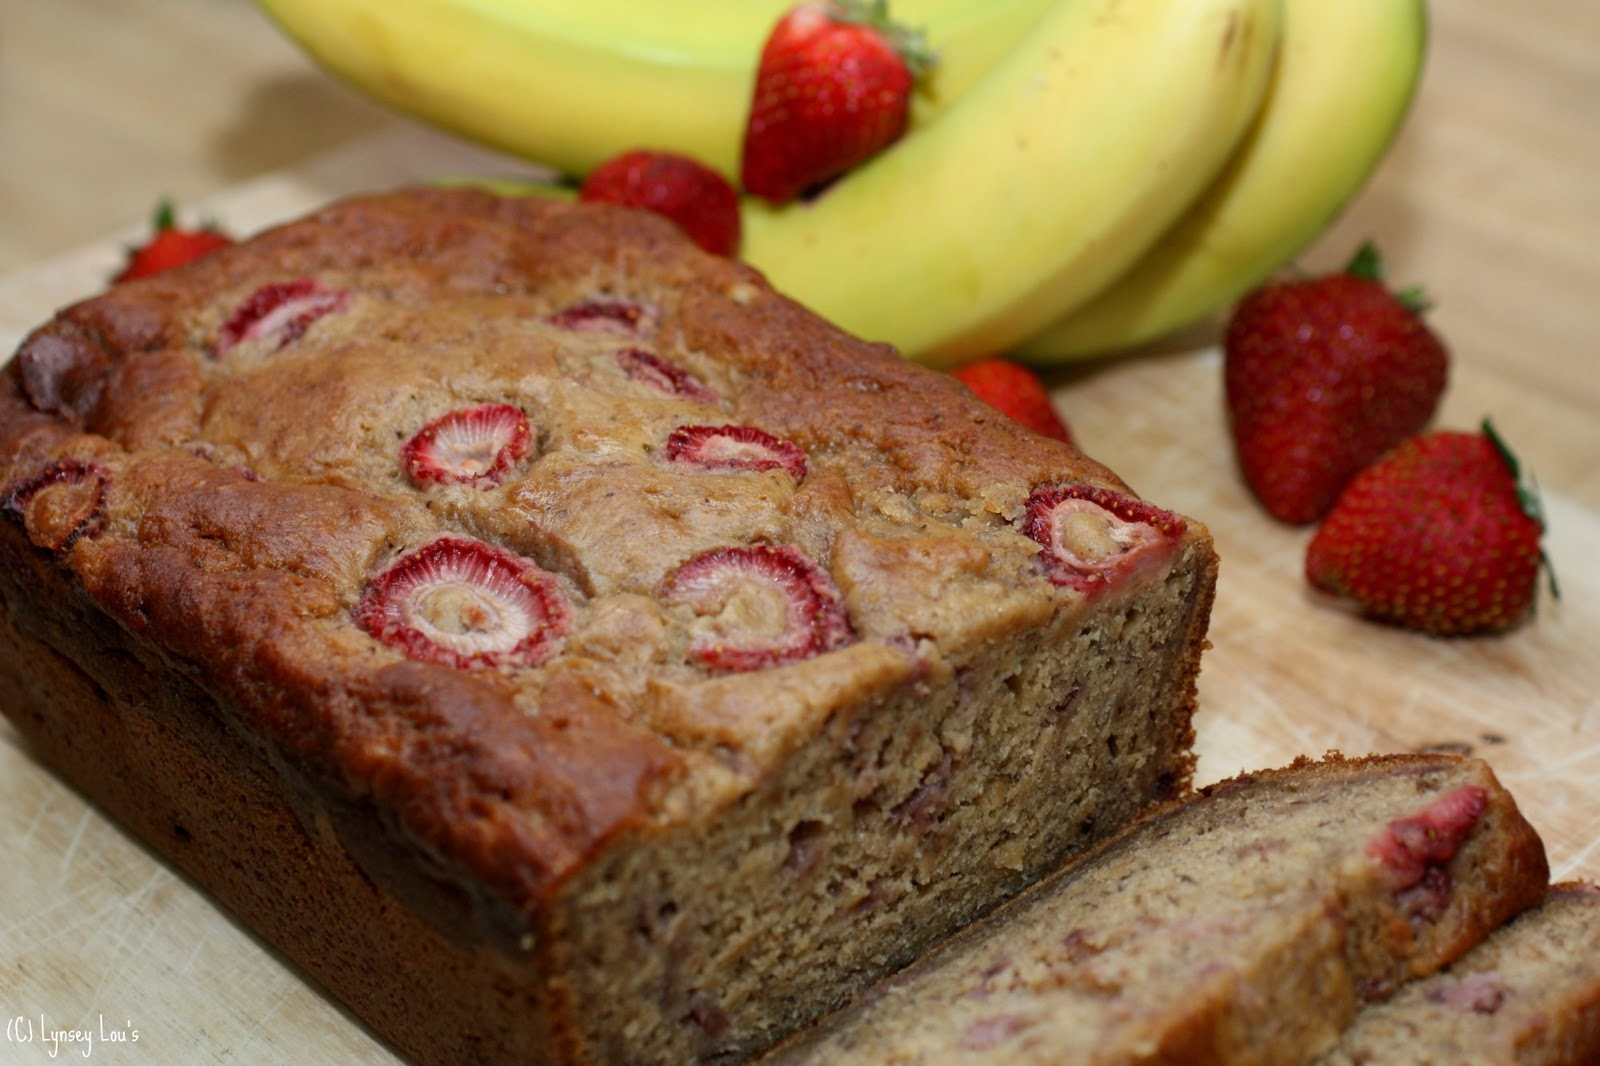 Lynsey Lou's: Brown Butter Banana Strawberry Bread